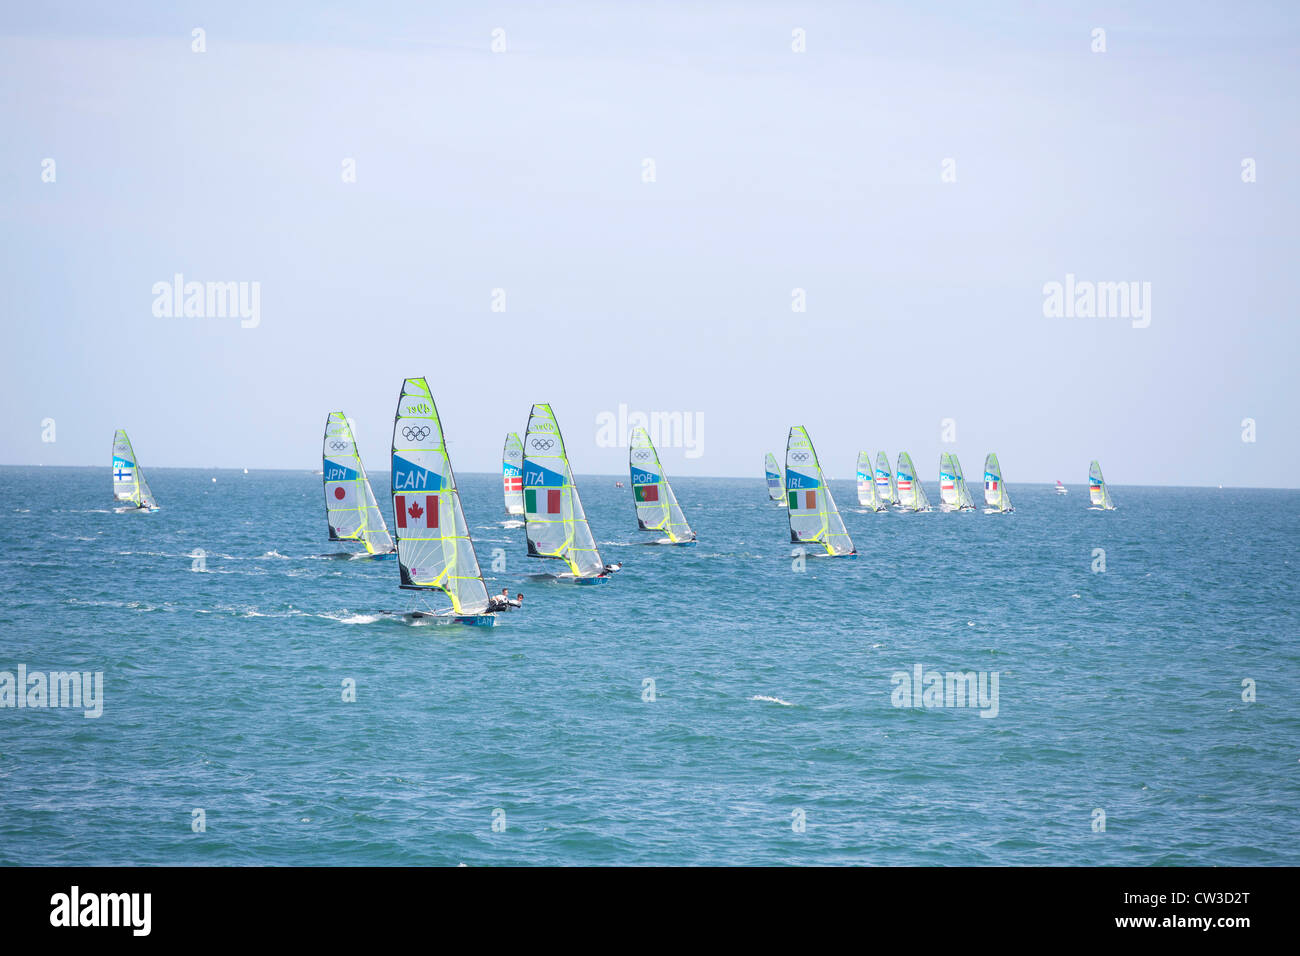 49er sailing dinghies racing during the Olympic sailing regatta in Weymouth and Portland - Stock Image